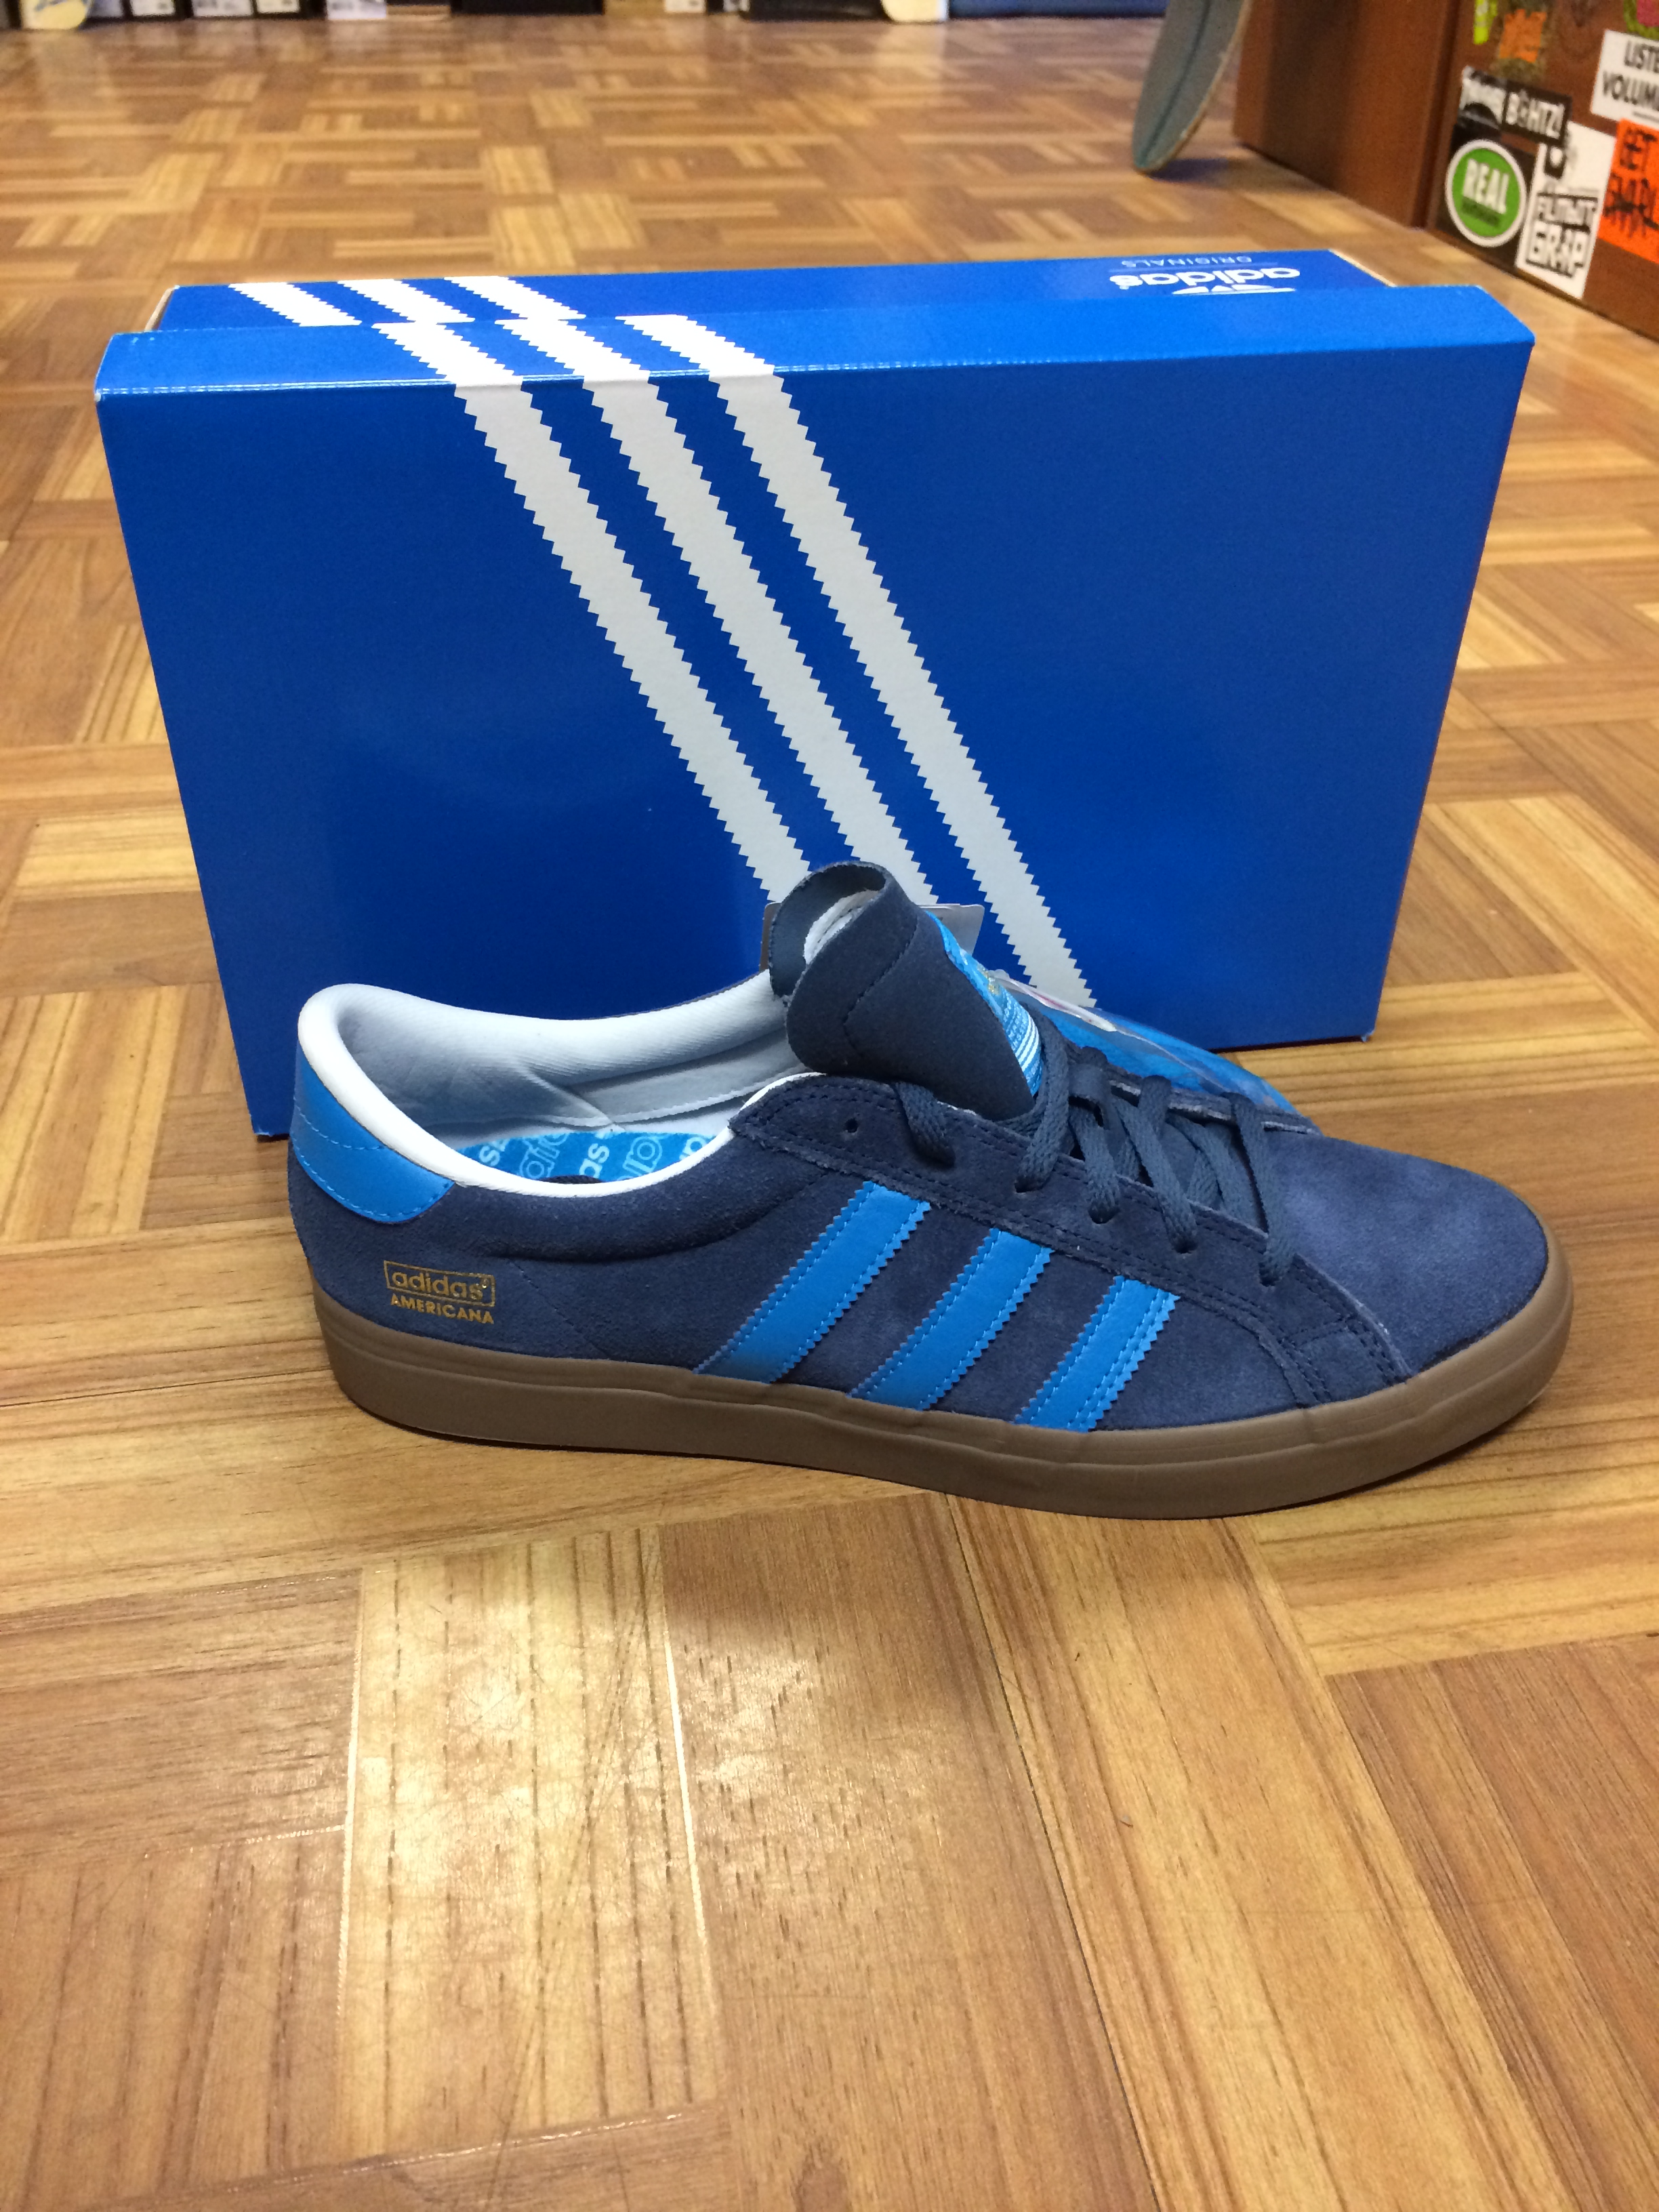 big sale d5027 9638c New Adidas SkateBoarding Americana Vin Low In BlueGum Just Came In Our  Harford Rd Store